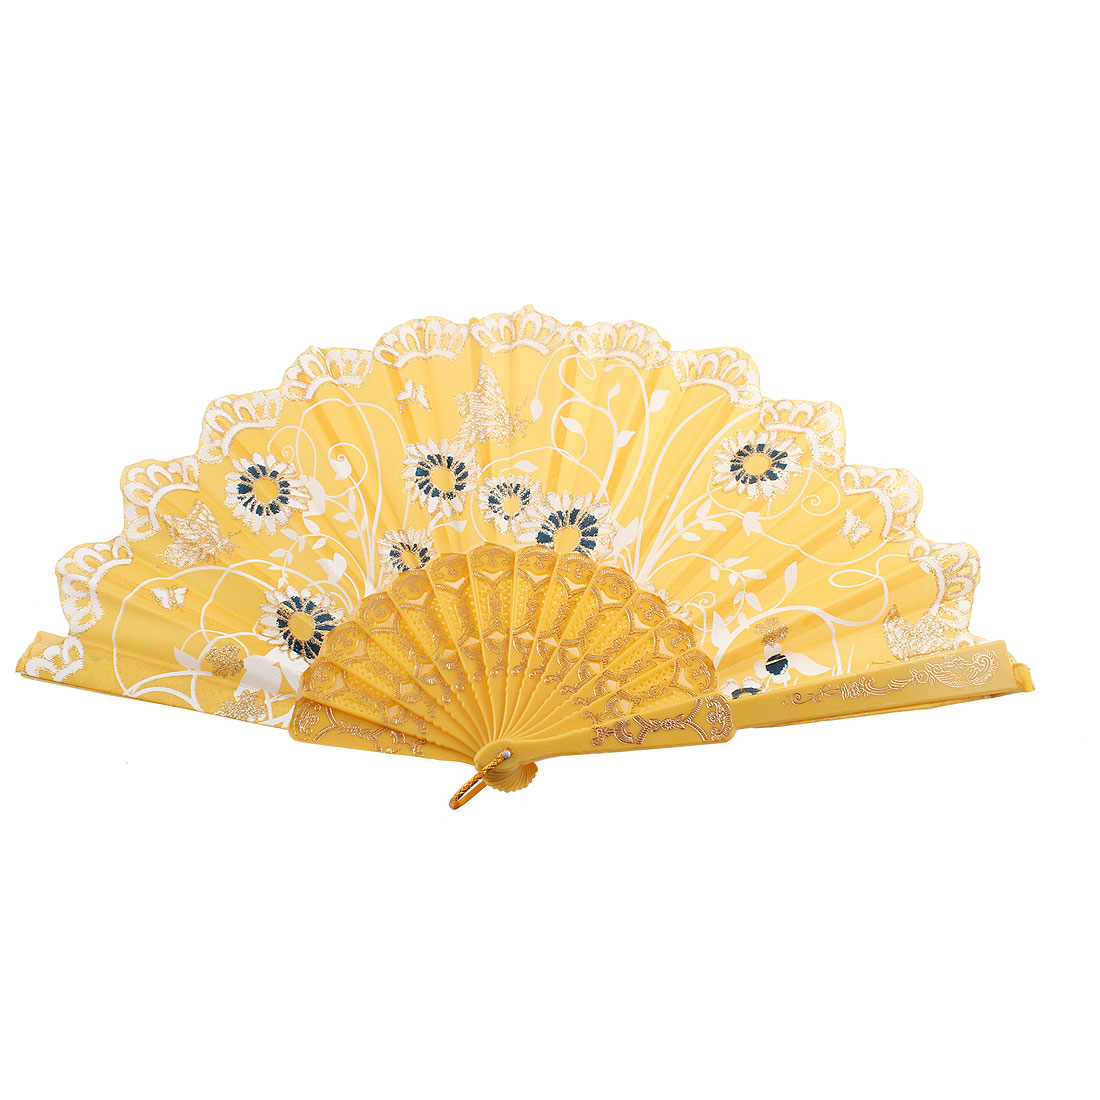 Hollow Out Frame Sunflower Butterfly Pattern Floral Rim Hand Fan Yellow